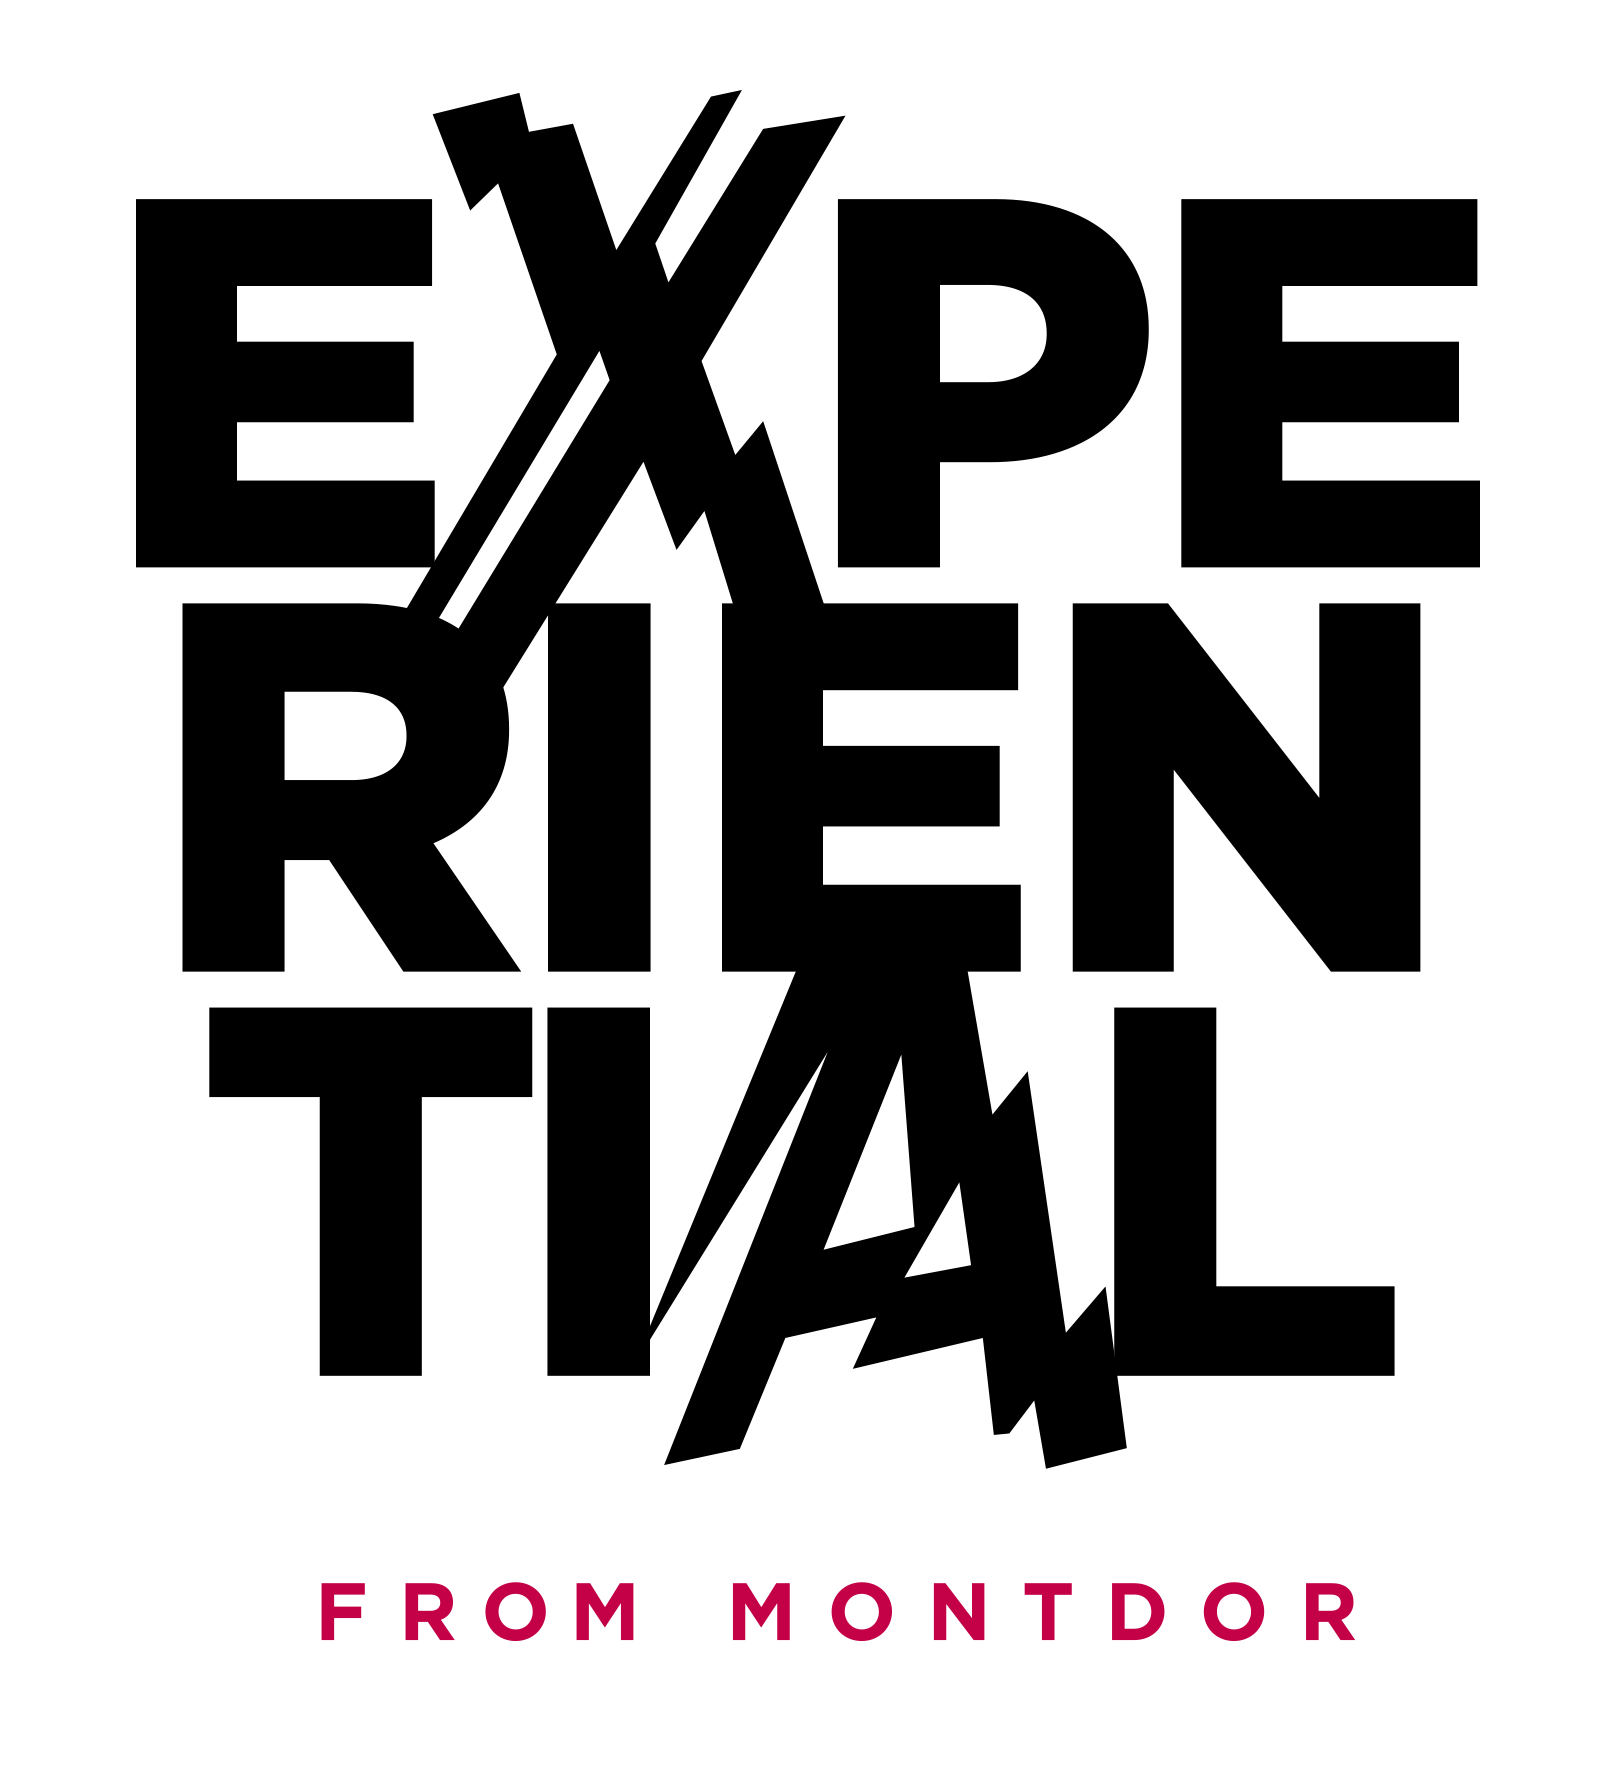 Experiential from montdor